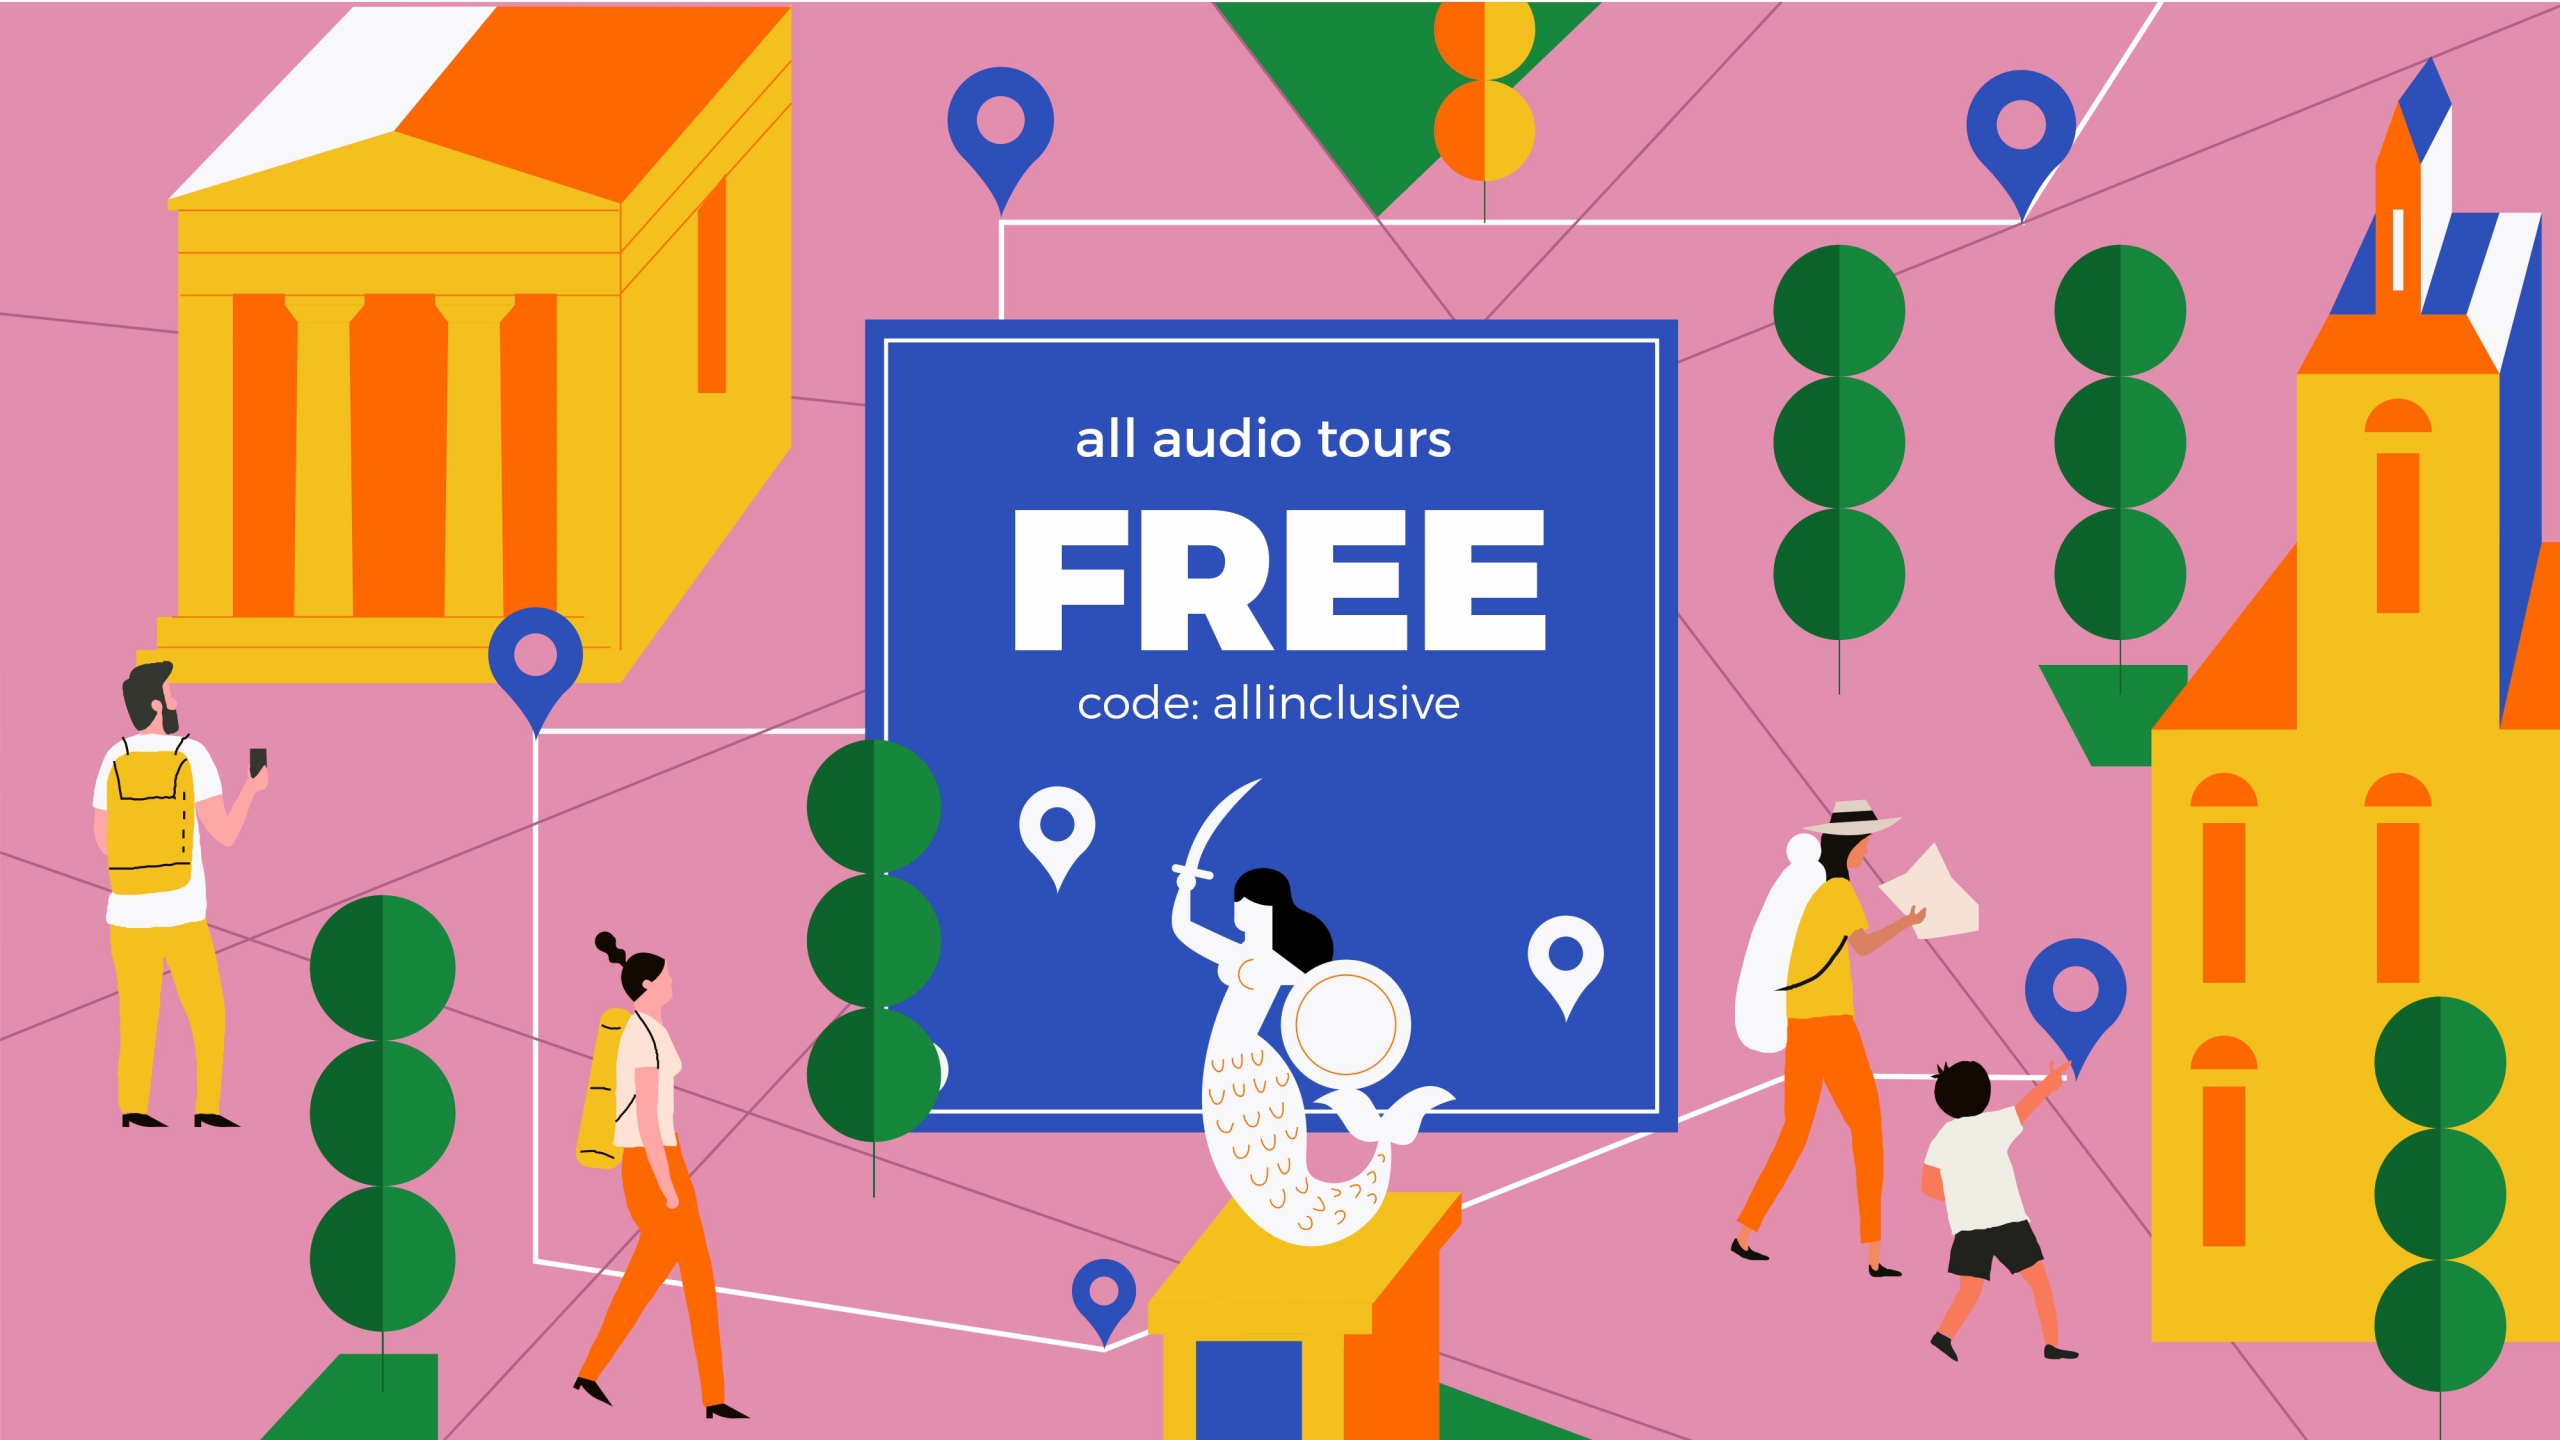 Allinclusive: All audio tours for free for one day